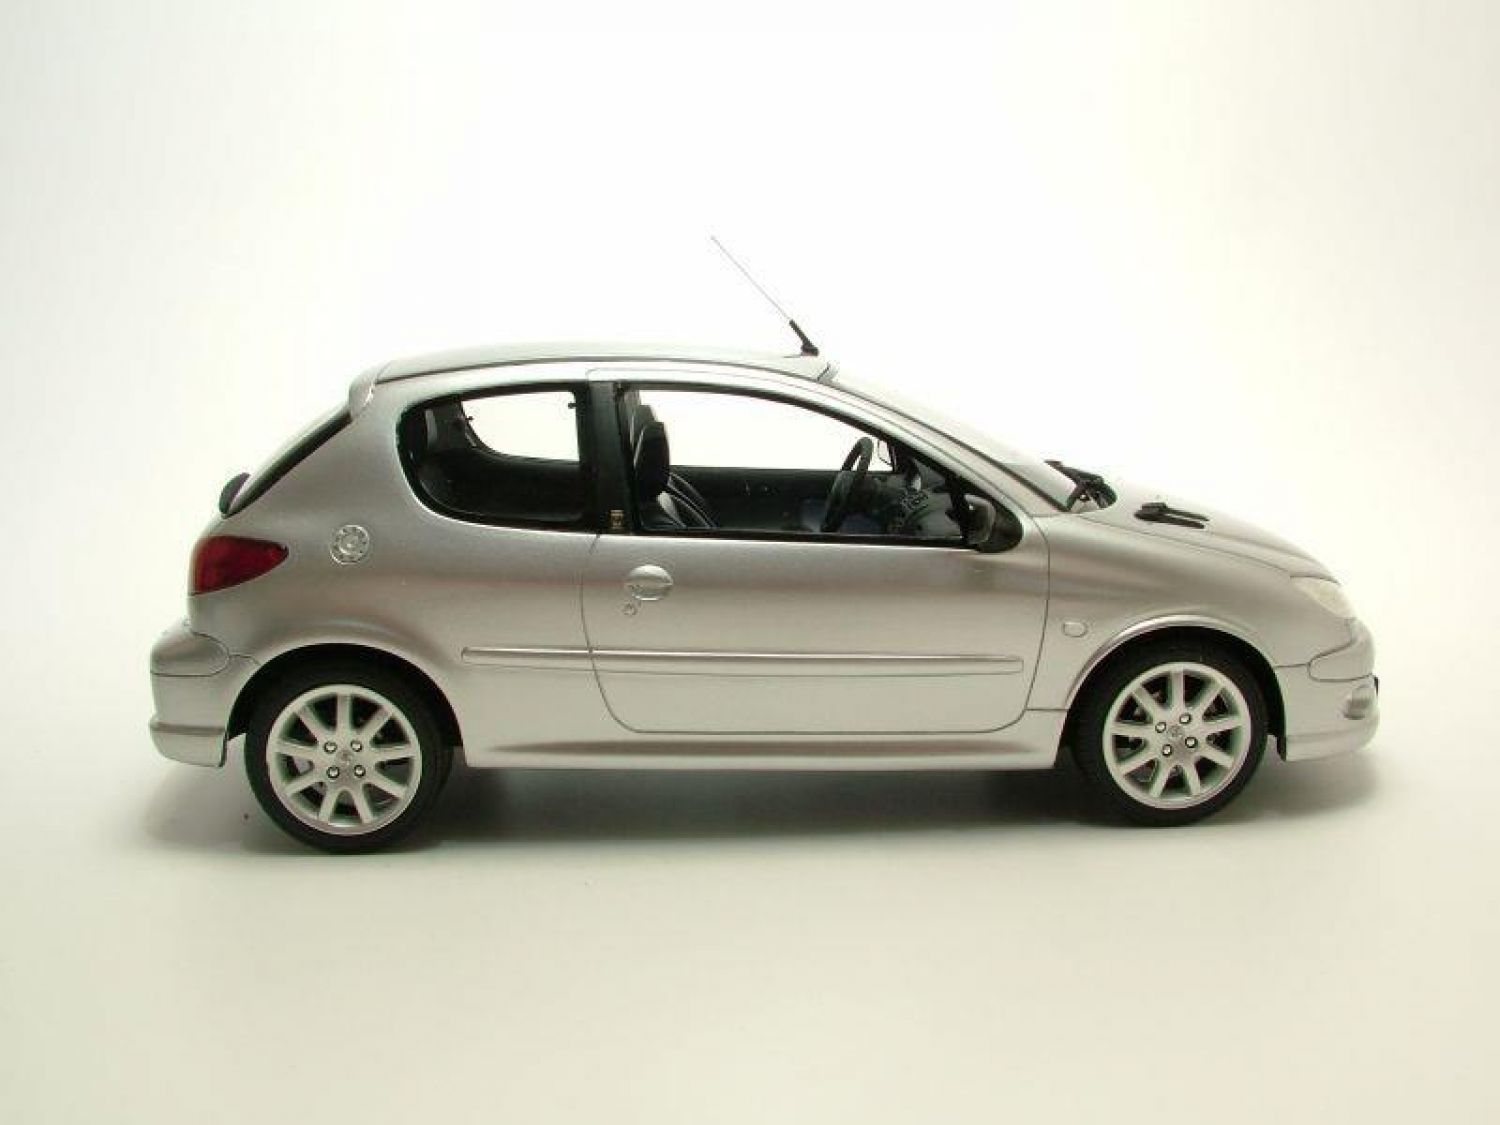 peugeot 206 gt argent mod le de voiture 1 18 ottomobile ebay. Black Bedroom Furniture Sets. Home Design Ideas